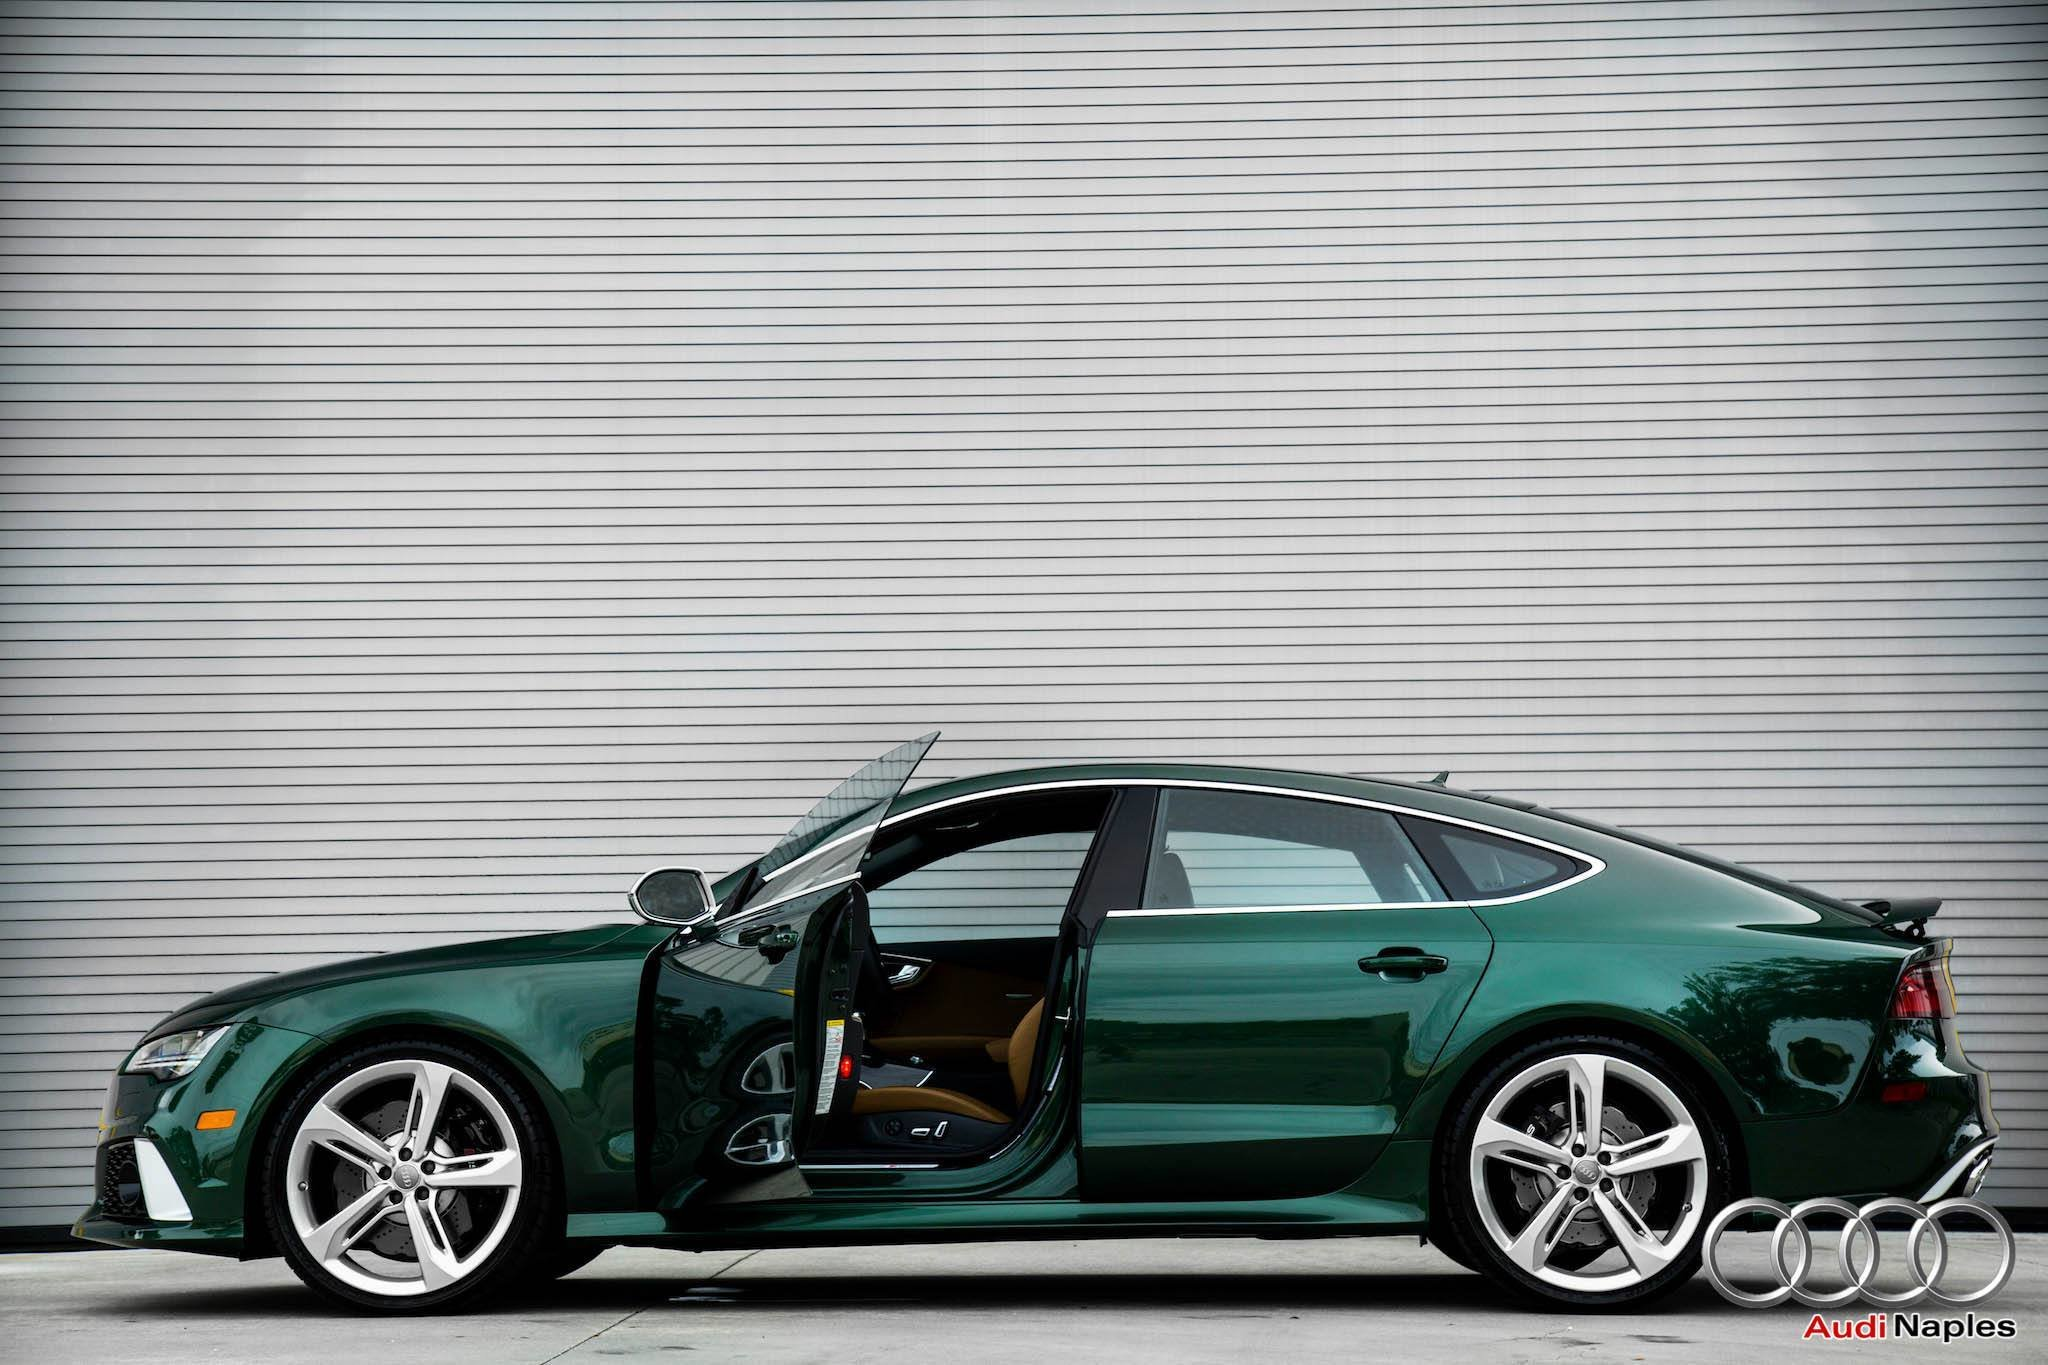 Latest 2016 Audi Rs7 In Verdant Green Looks Like A Bentley Free Download